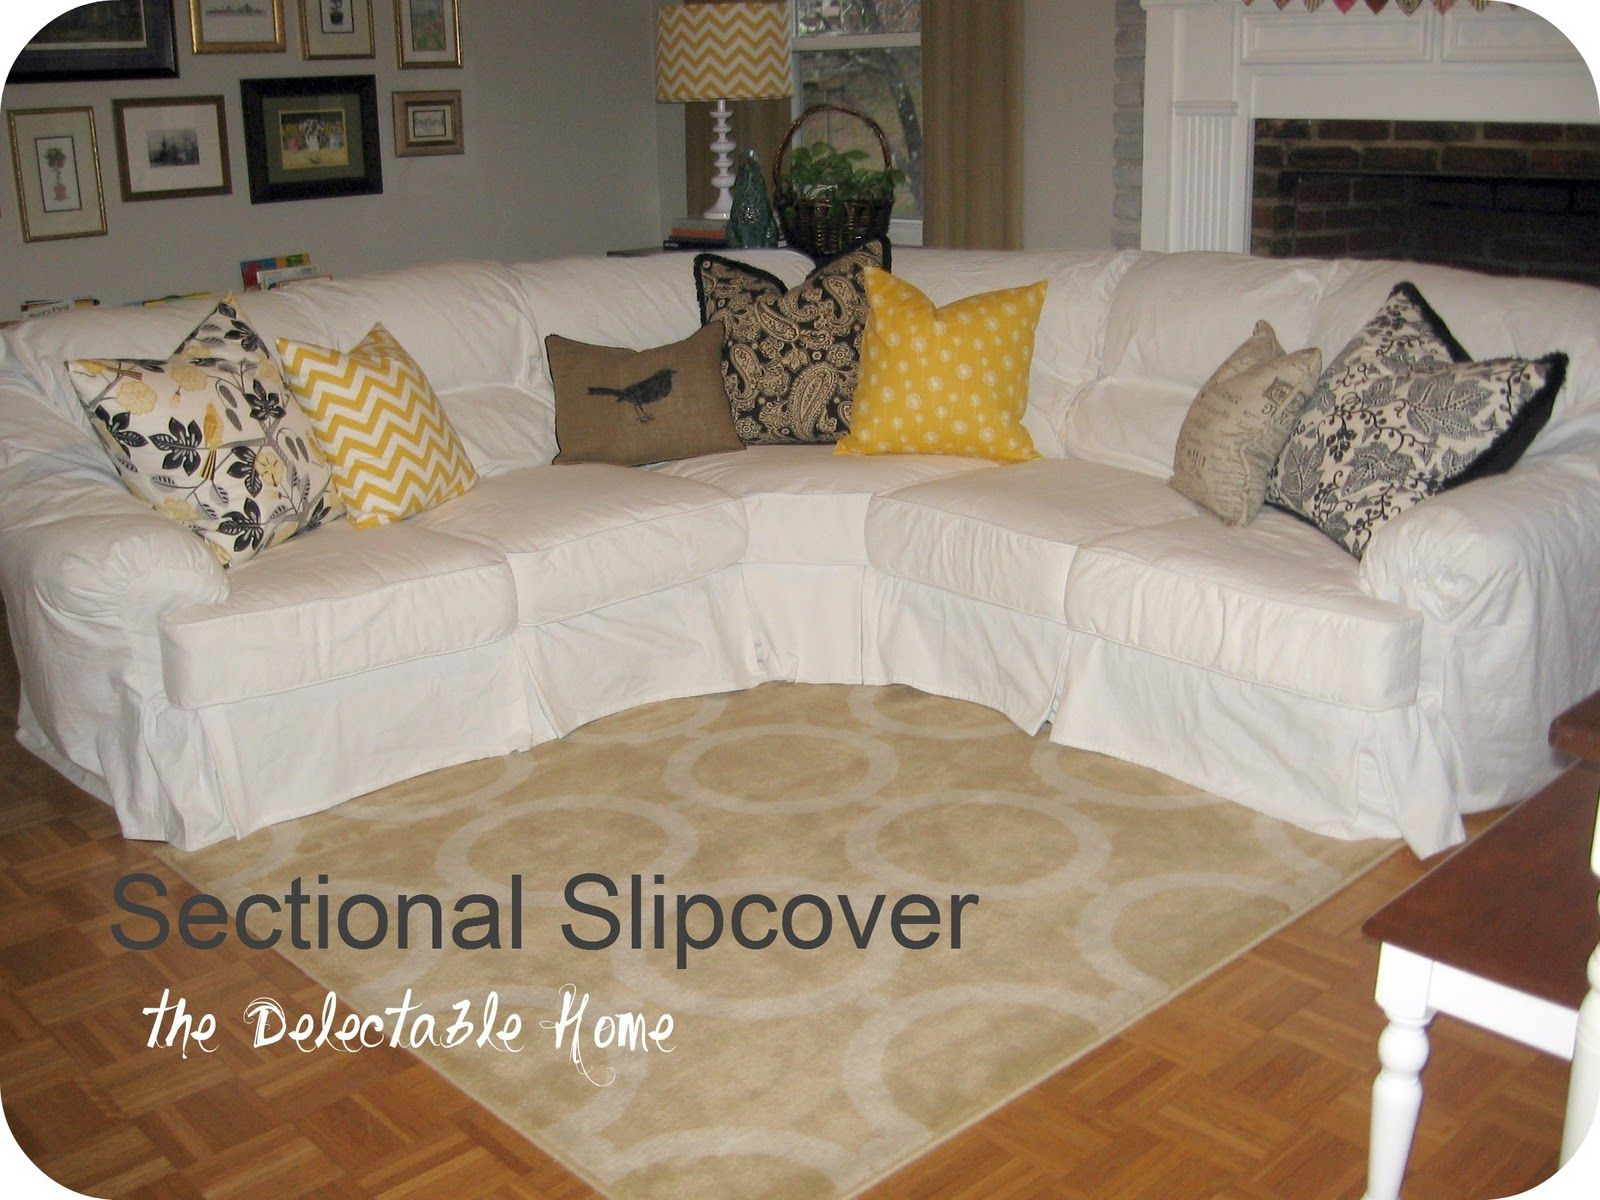 The Delectable Home Impossible Sectional Slipcover Covers Sofa Slipcovers